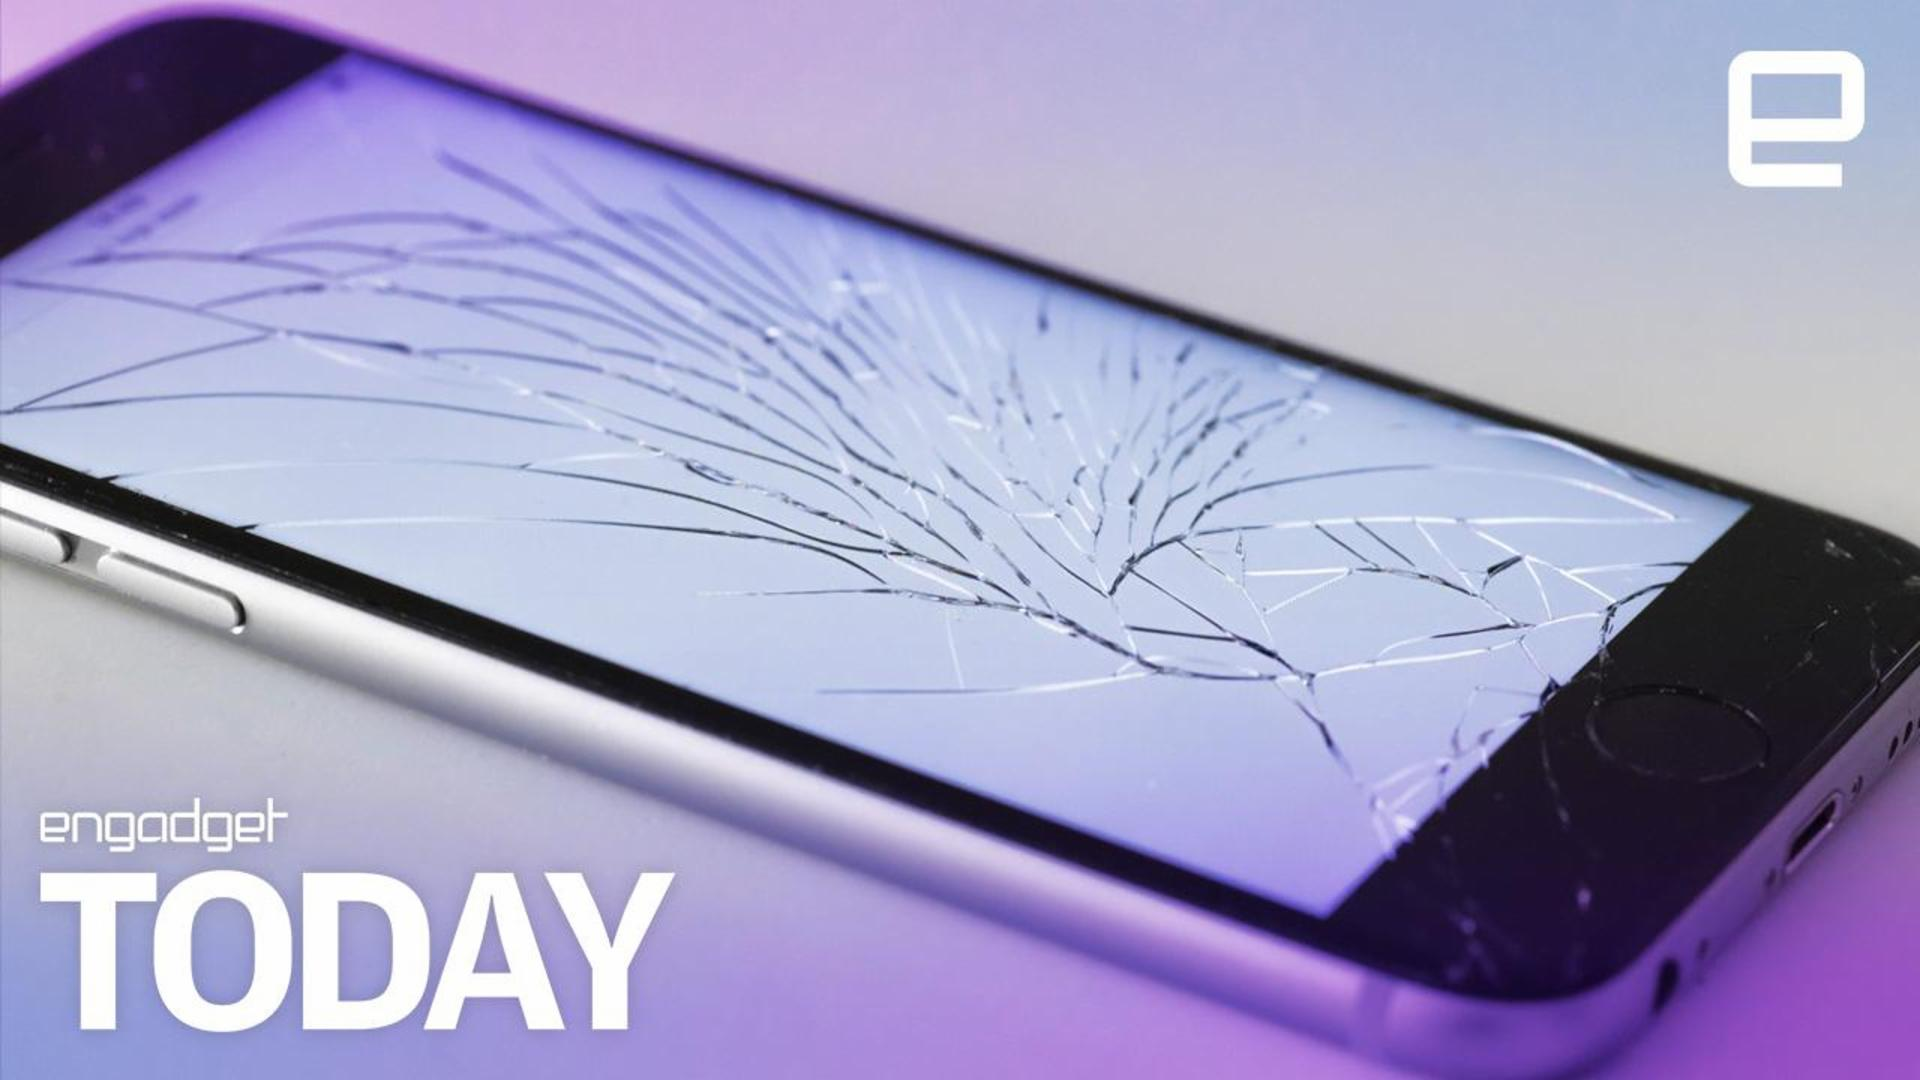 Even genuine replacement Apple displays can mess with iPhones